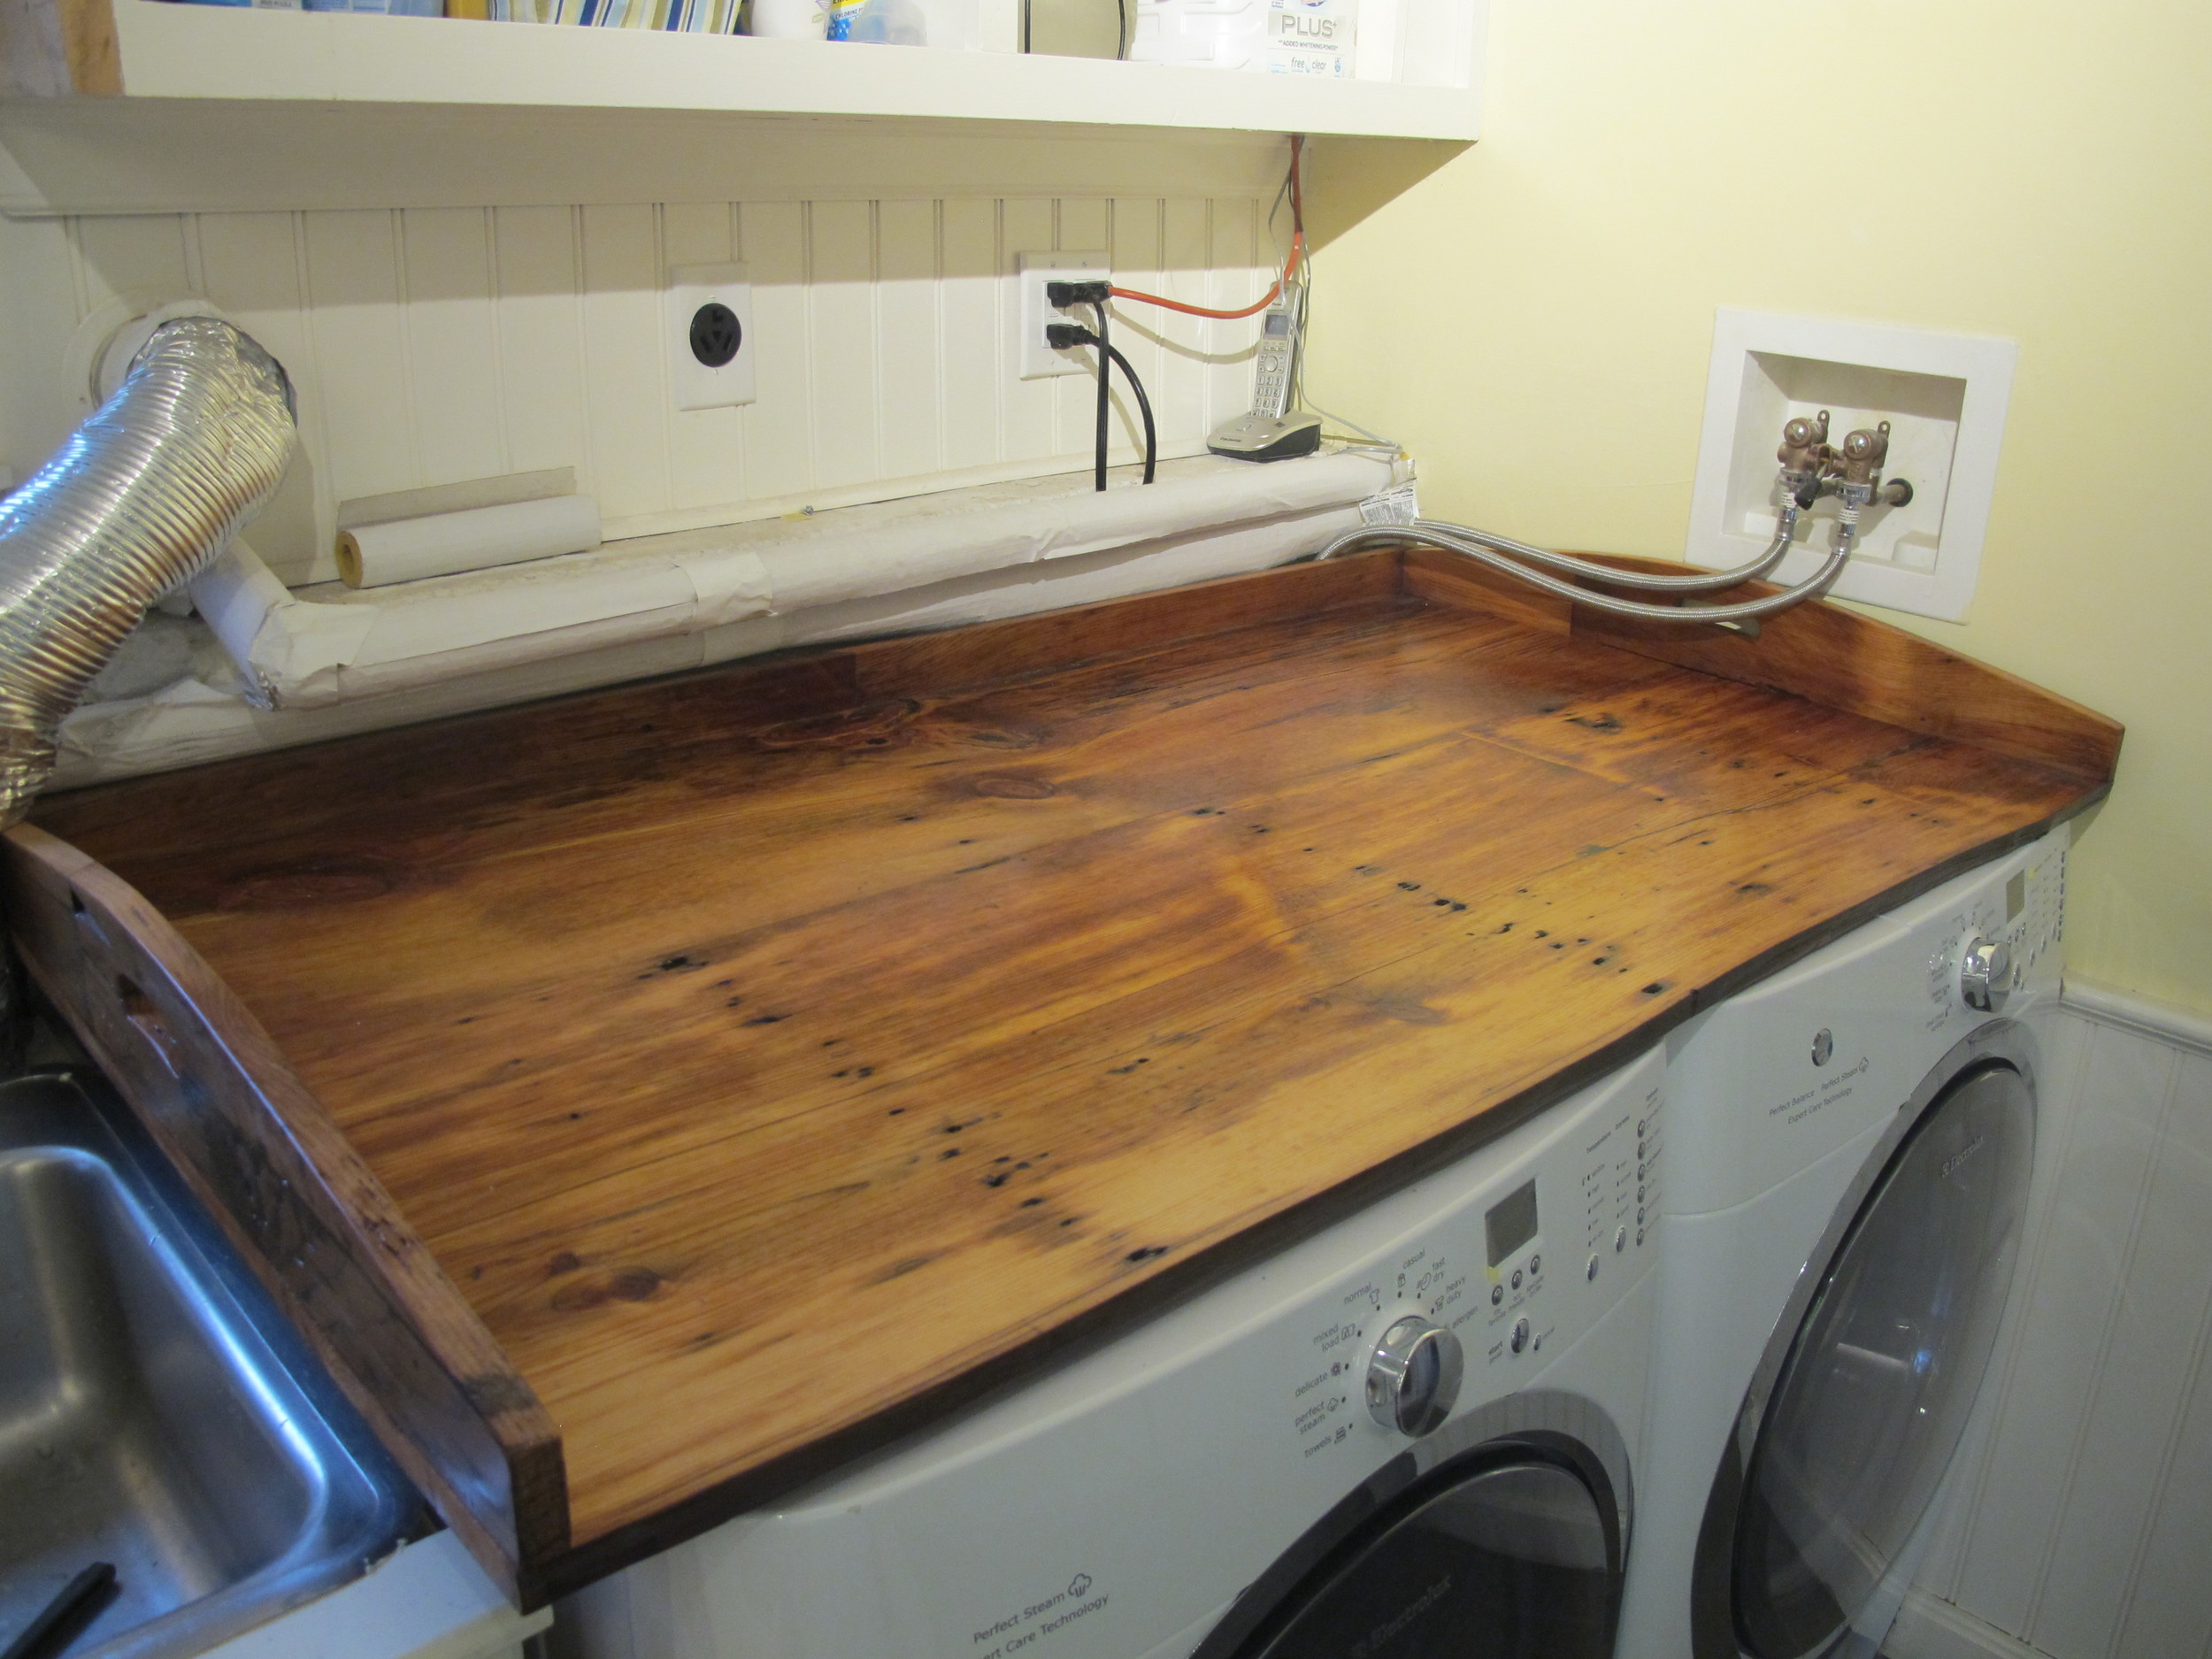 Laundry Tray Countertop